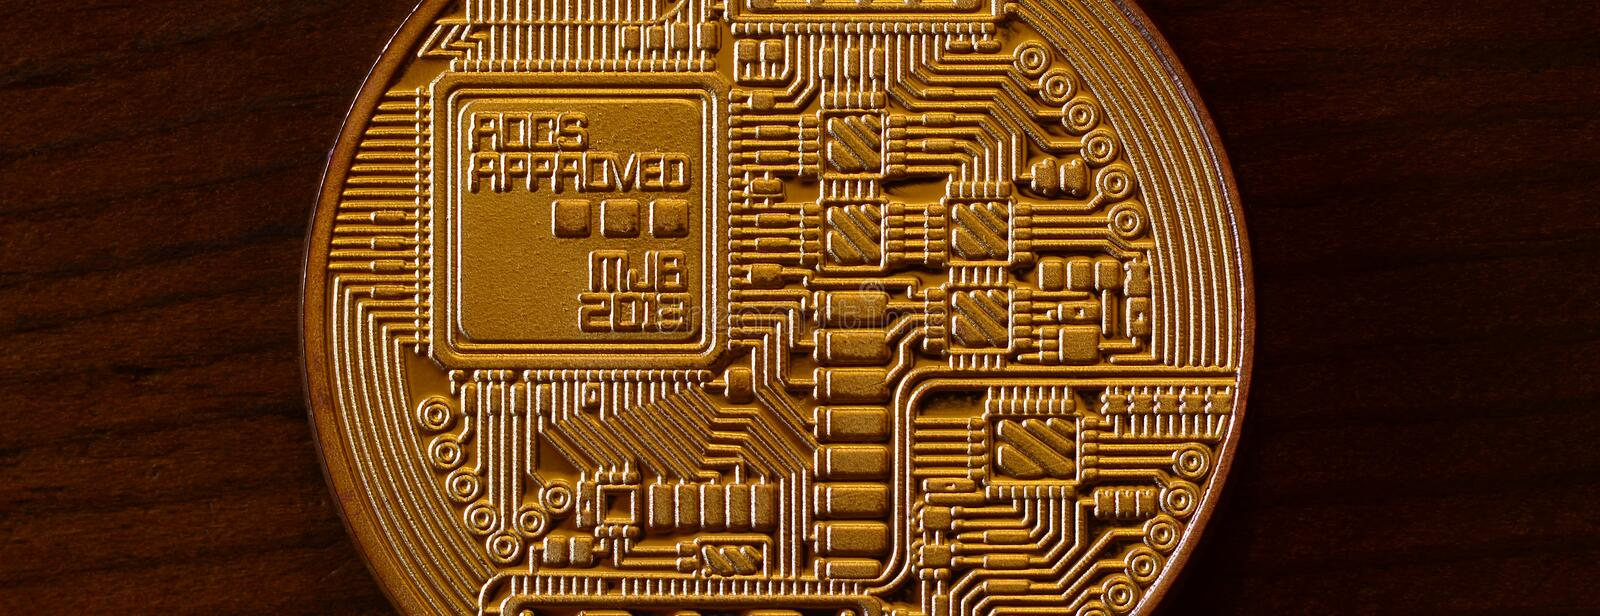 One new golden physical bitcoin is lies on dark wooden backgound, close up. High resolution photo. Cryptocurrency mining concep royalty free stock photos